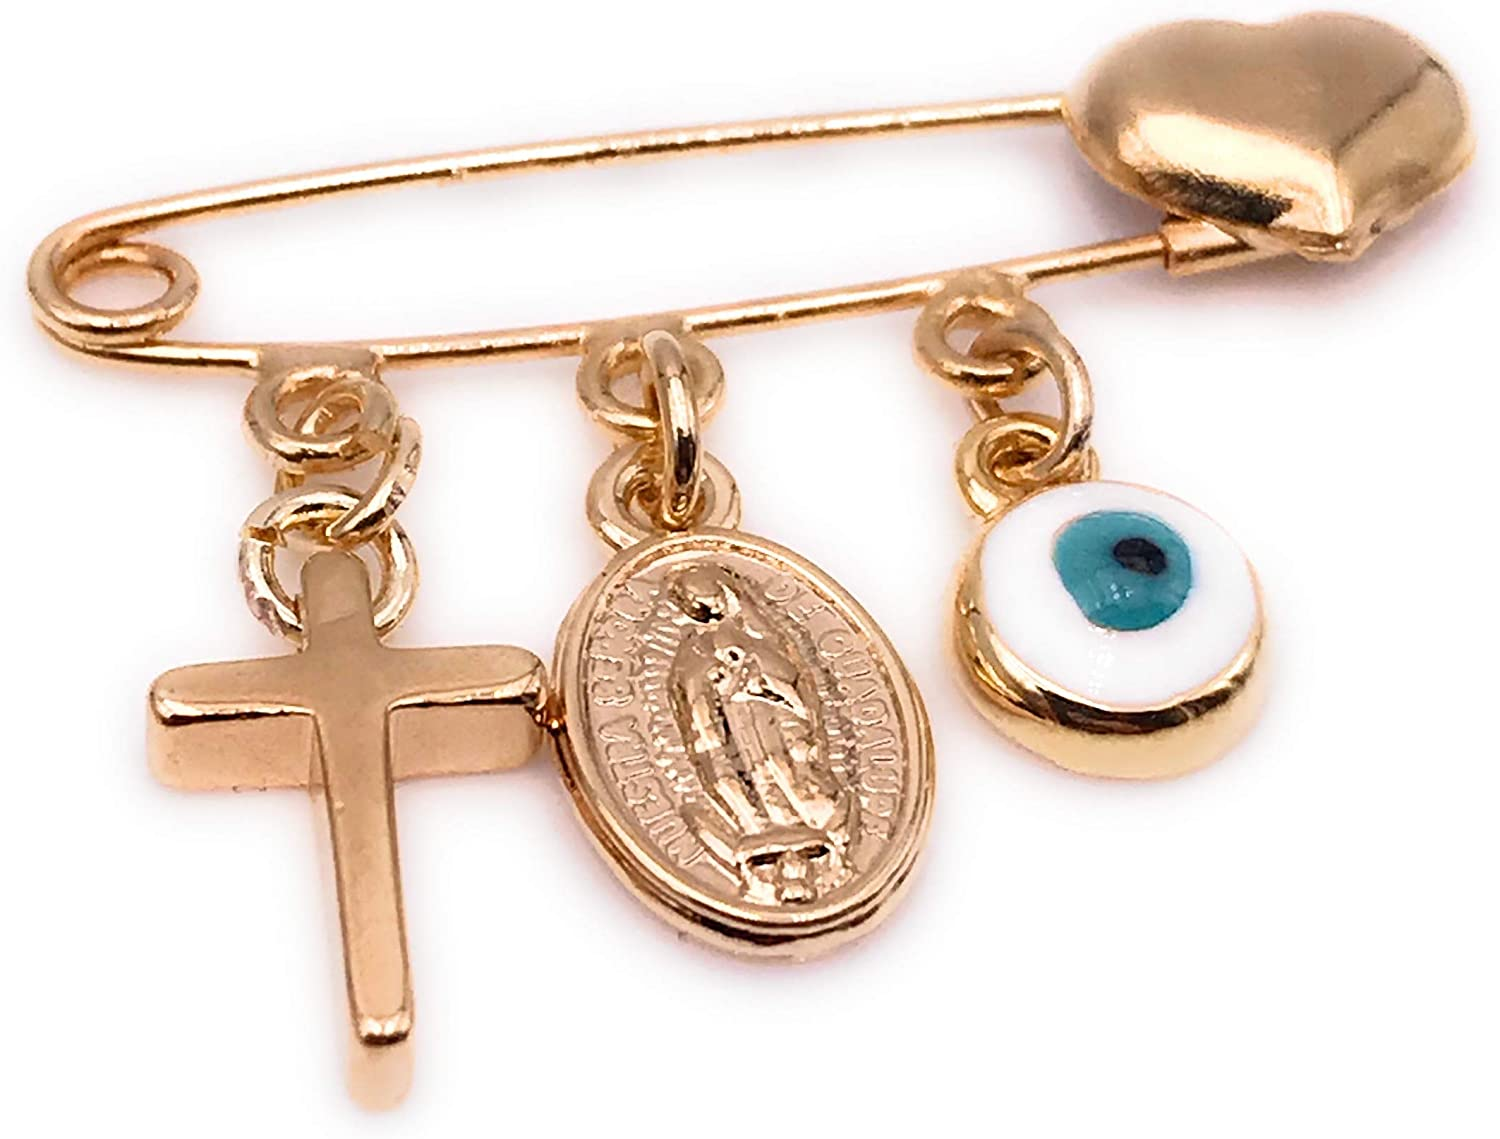 LESLIE BOULES Gold Plated Baby Brooch Pin for New Born Religious Jewelry